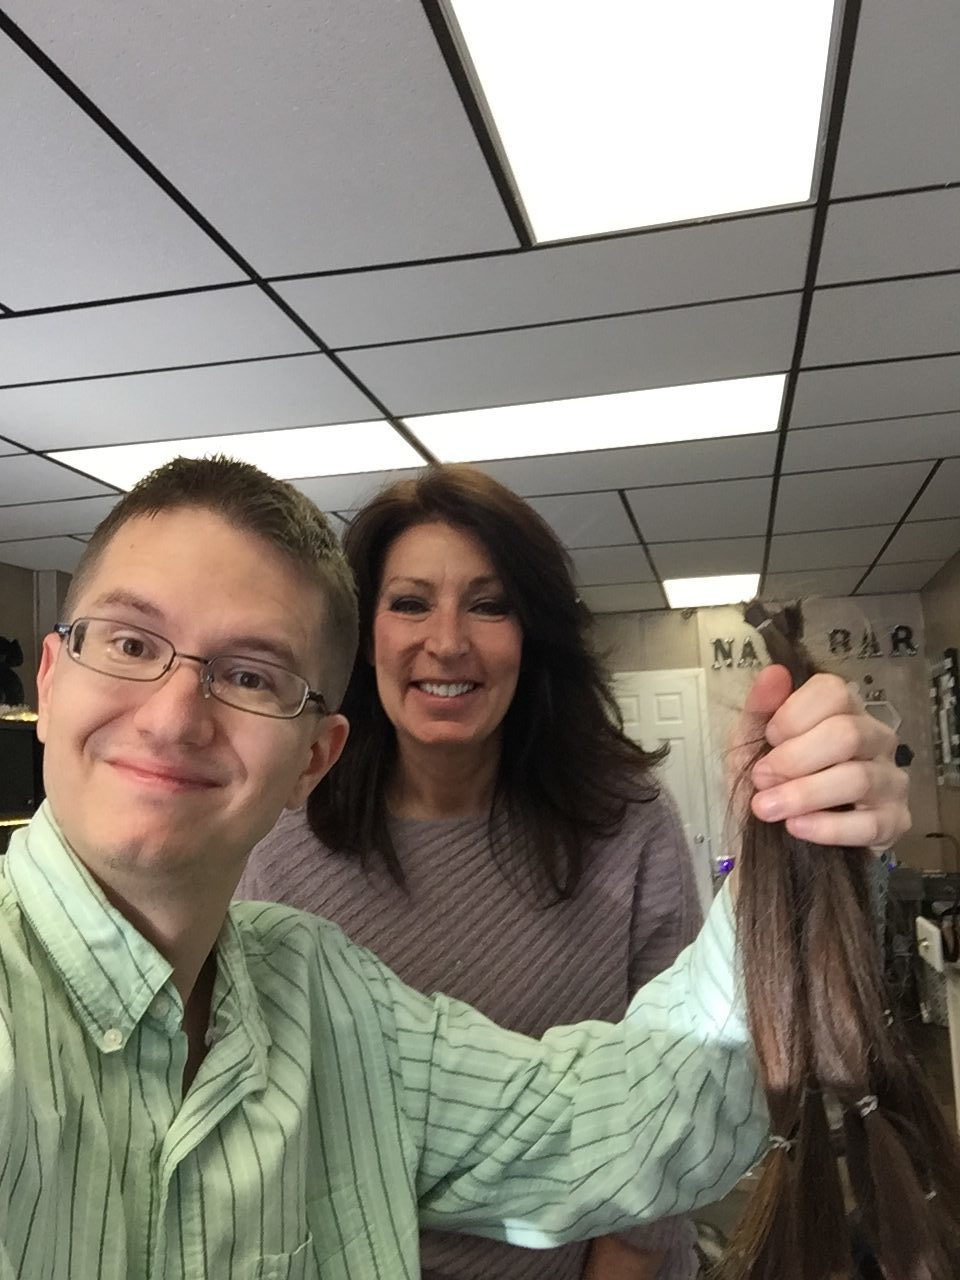 ellwood city men Famous hair is a full-service hair salon in ellwood city, pa that offers quality men's and women's haircuts, hair styling, and color services at an affordable price.